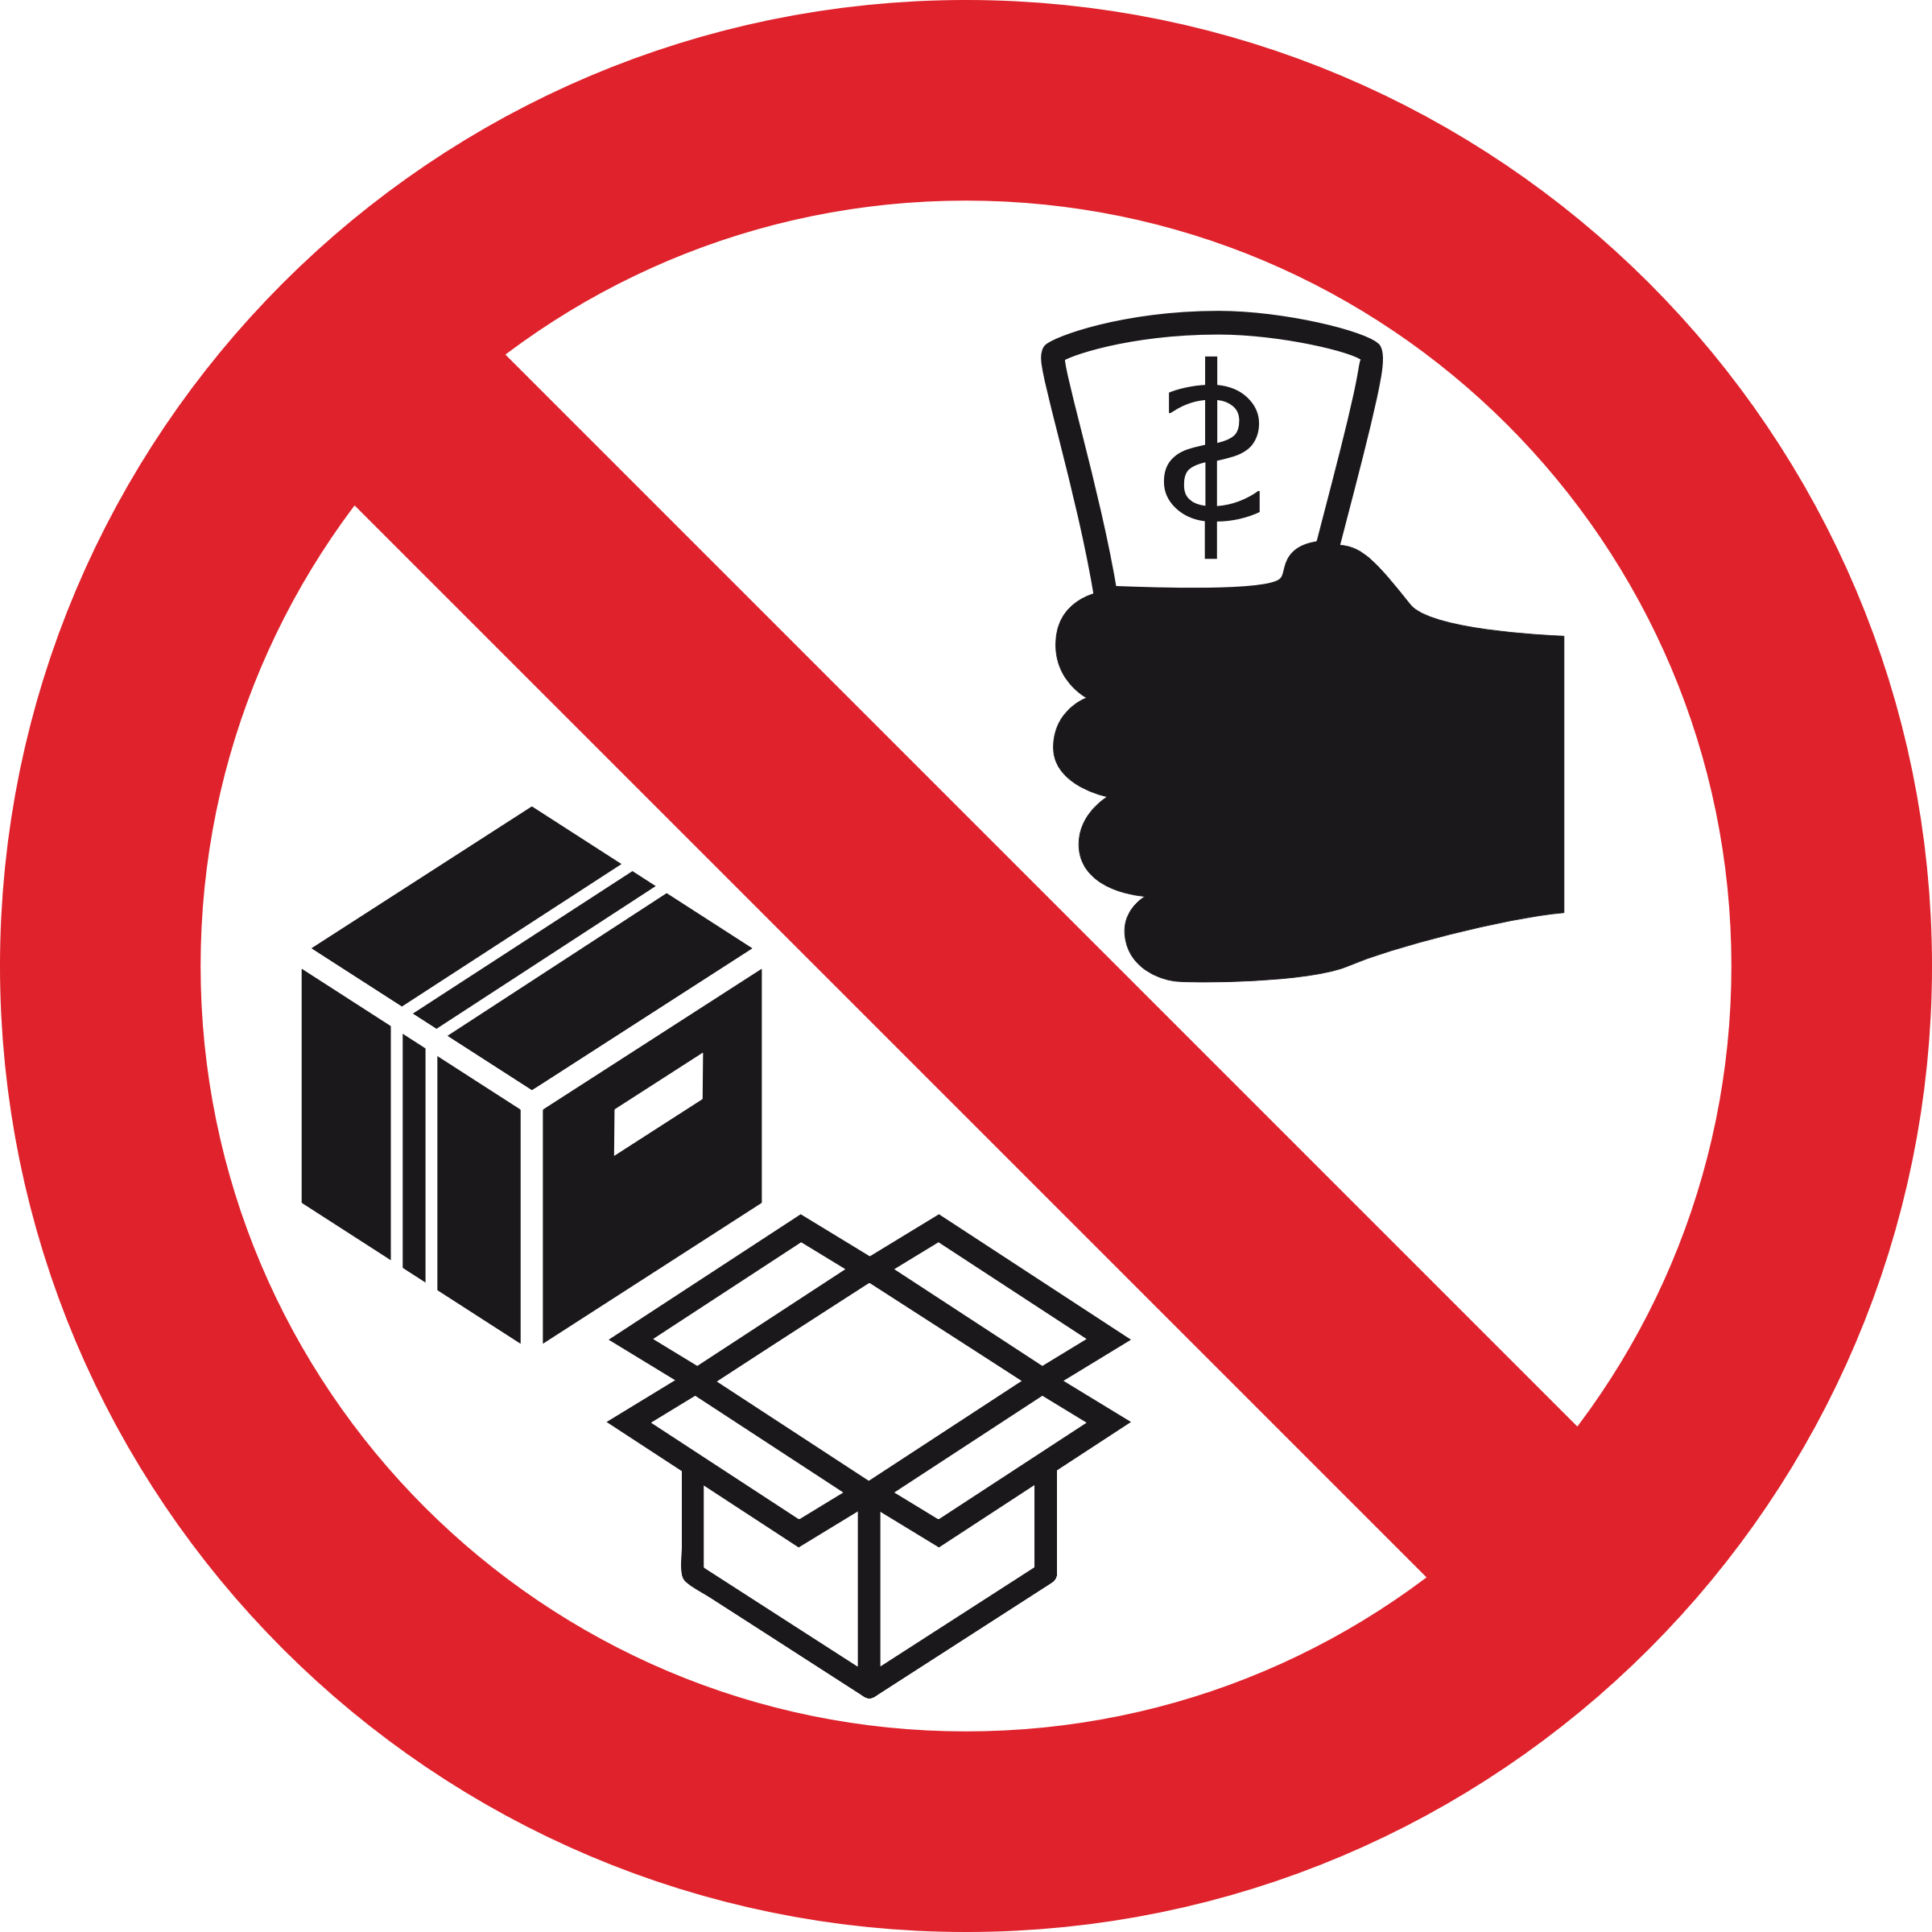 No selling or trading. Money clipart trade